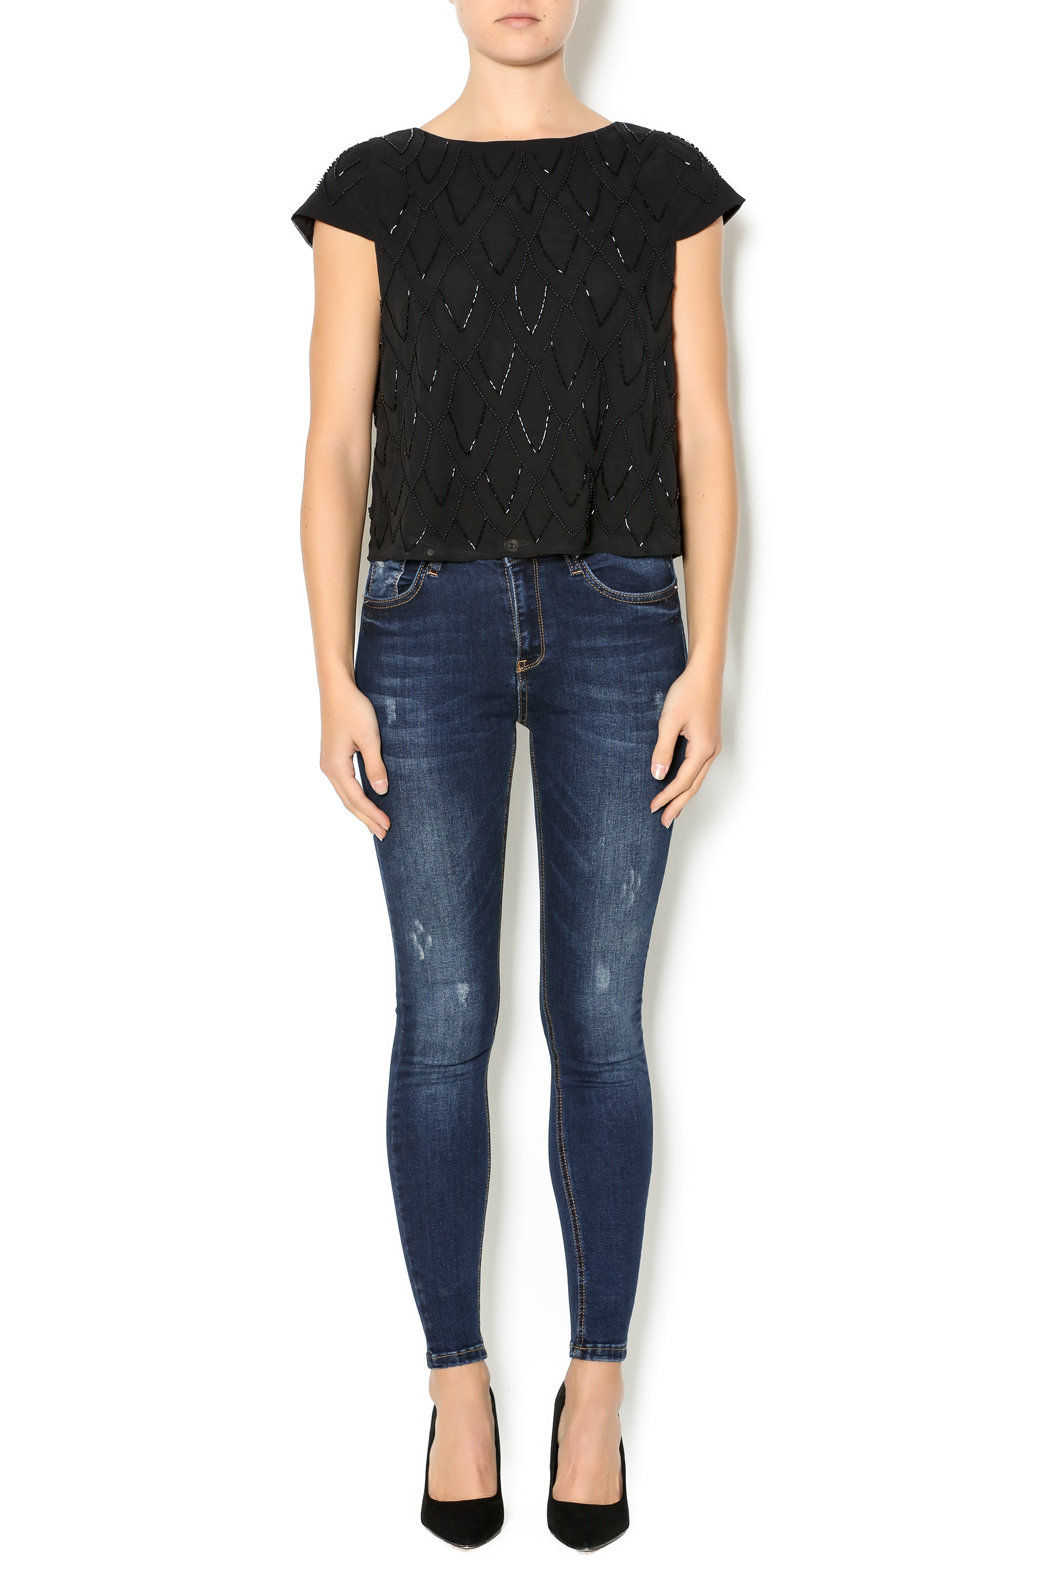 bishop black beaded top from florida by chasing